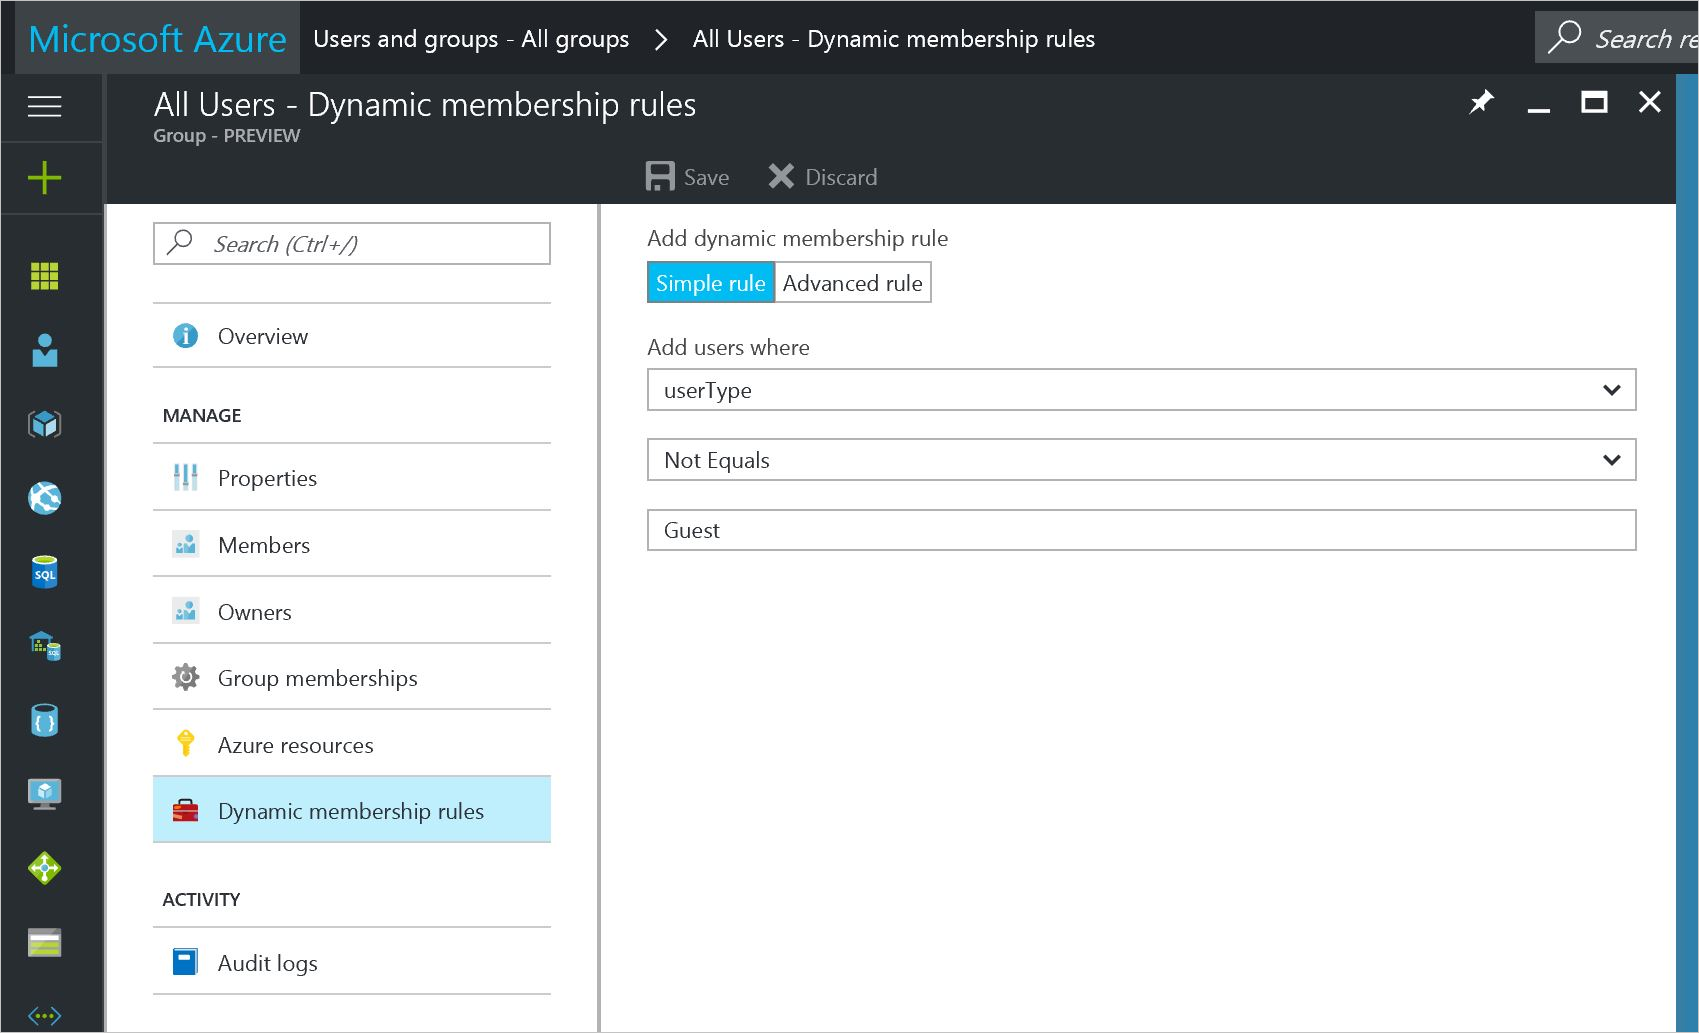 How to add a user in azure - Can I Block Access To The Azure Portal For Guest Users